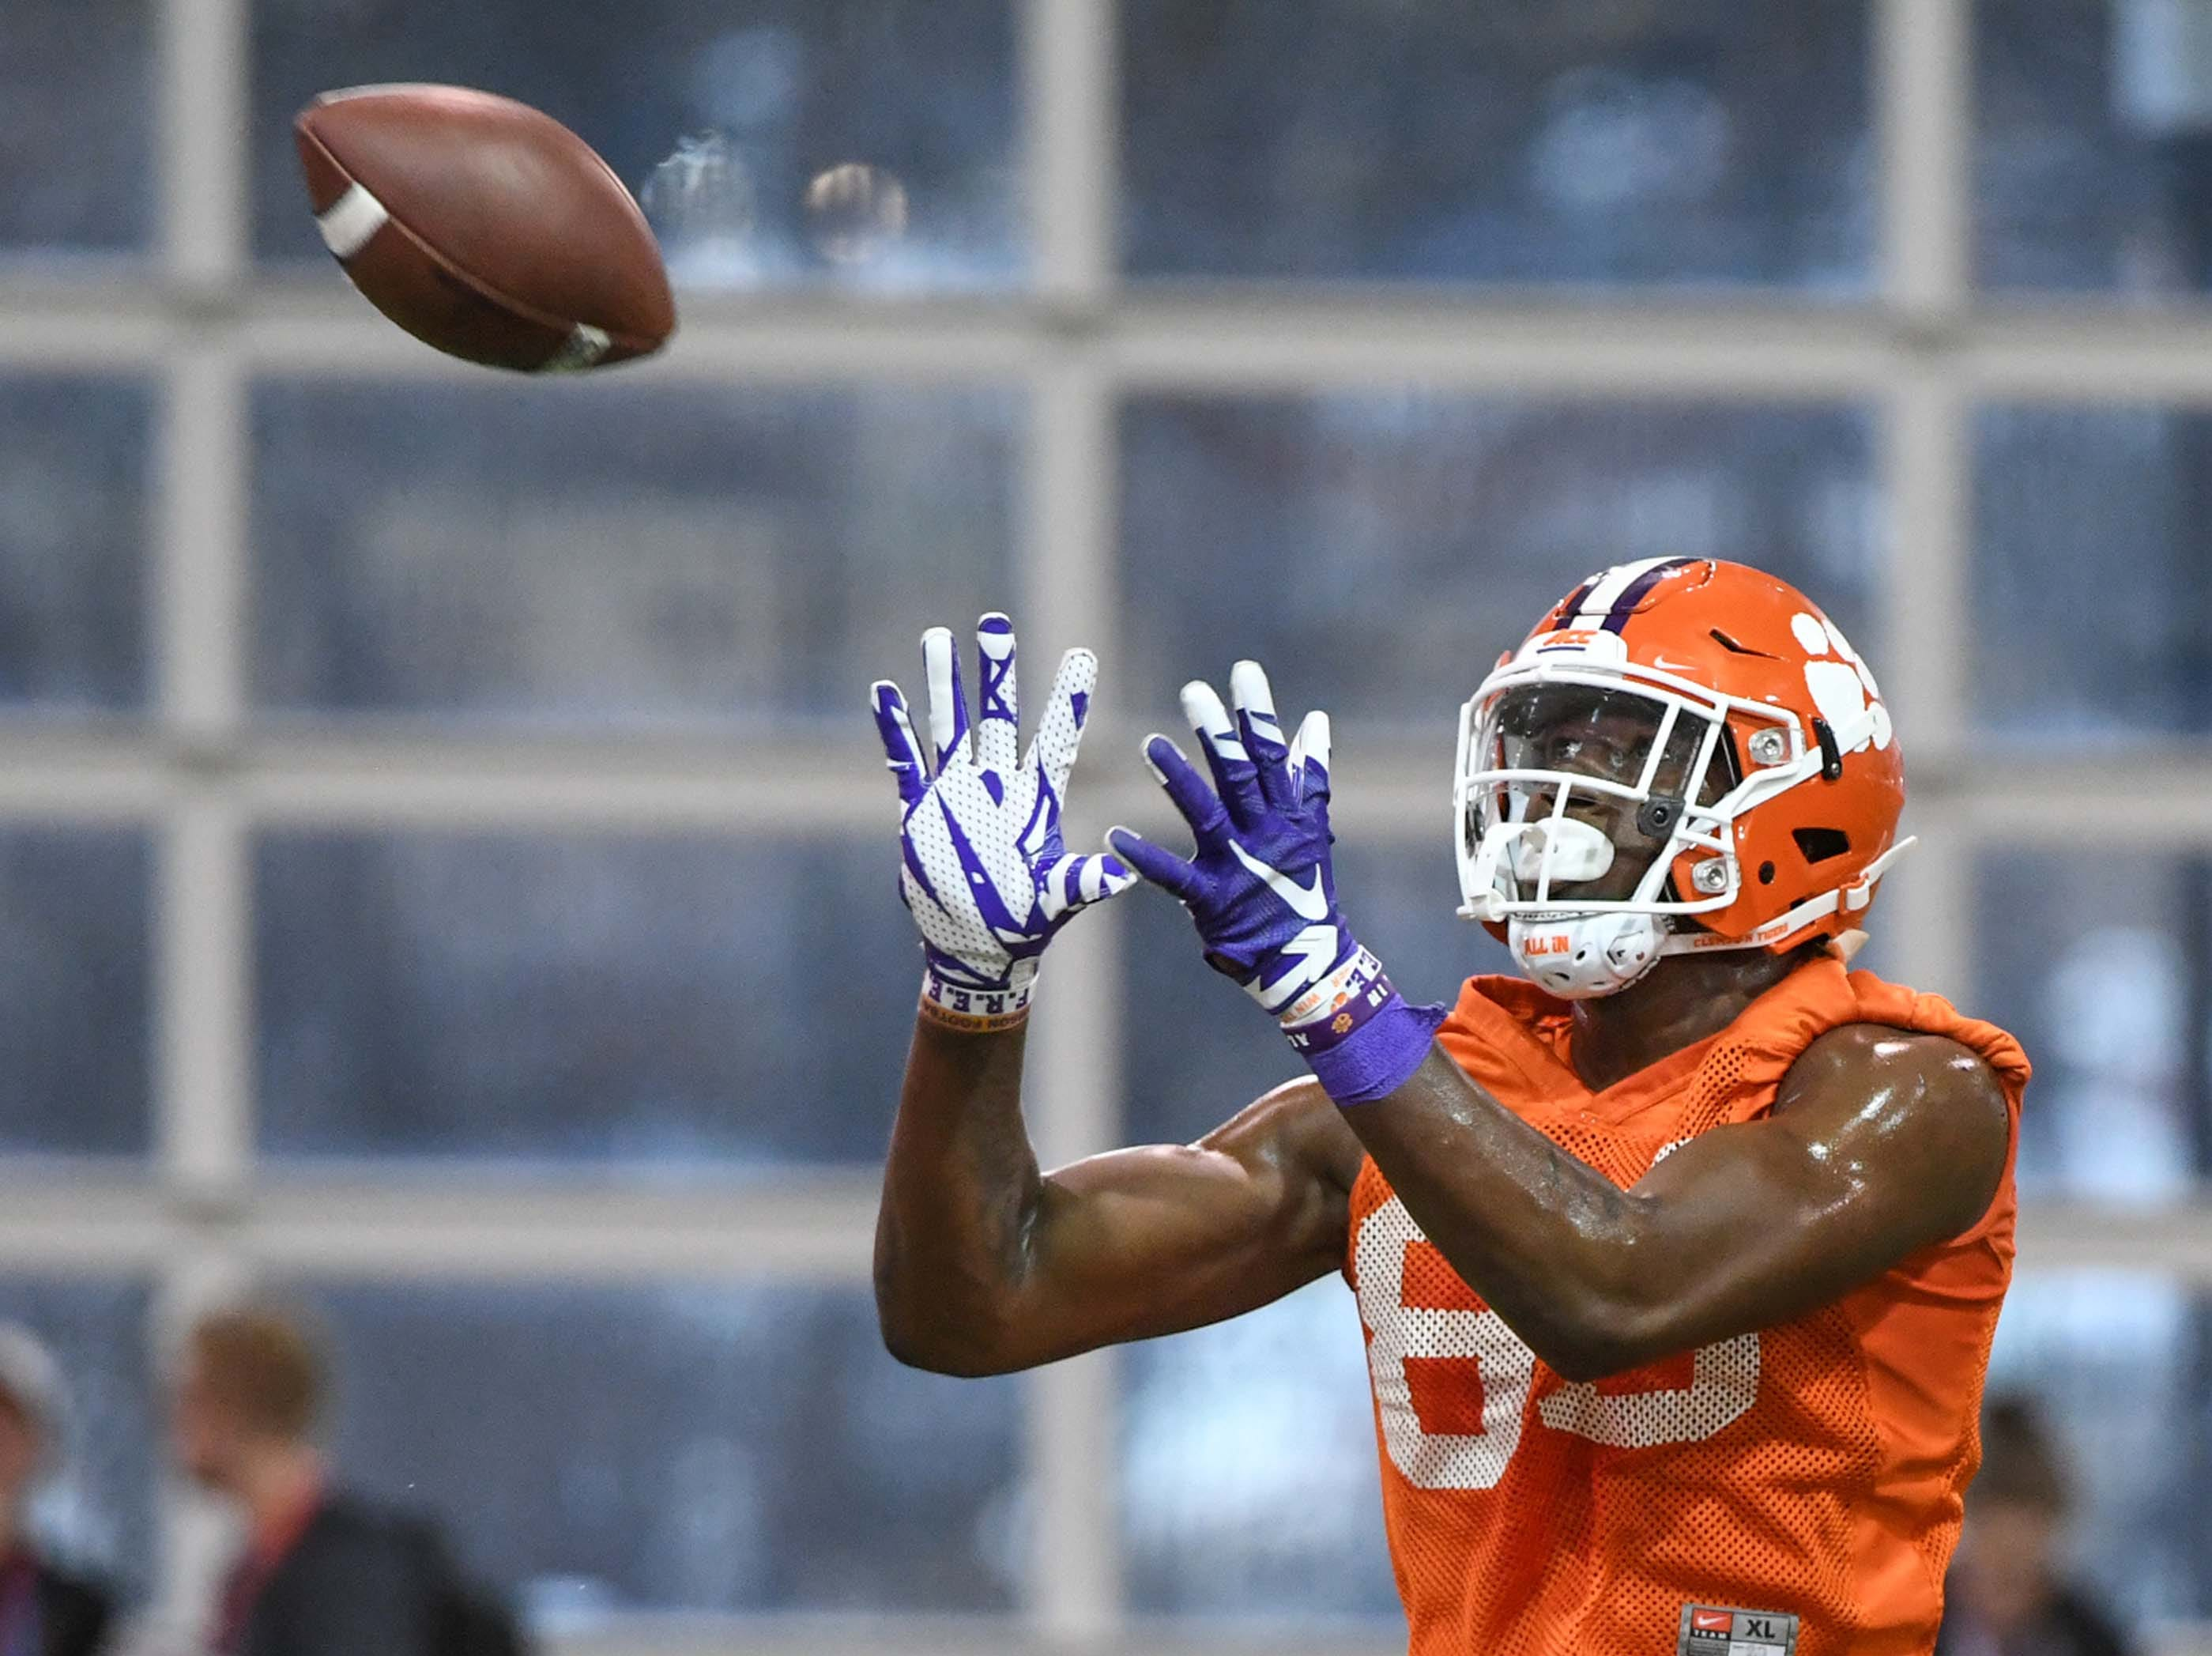 Clemson tight end Jaelyn Lay (85) catches a ball during practice at the Poe Indoor Facility in Clemson Friday.